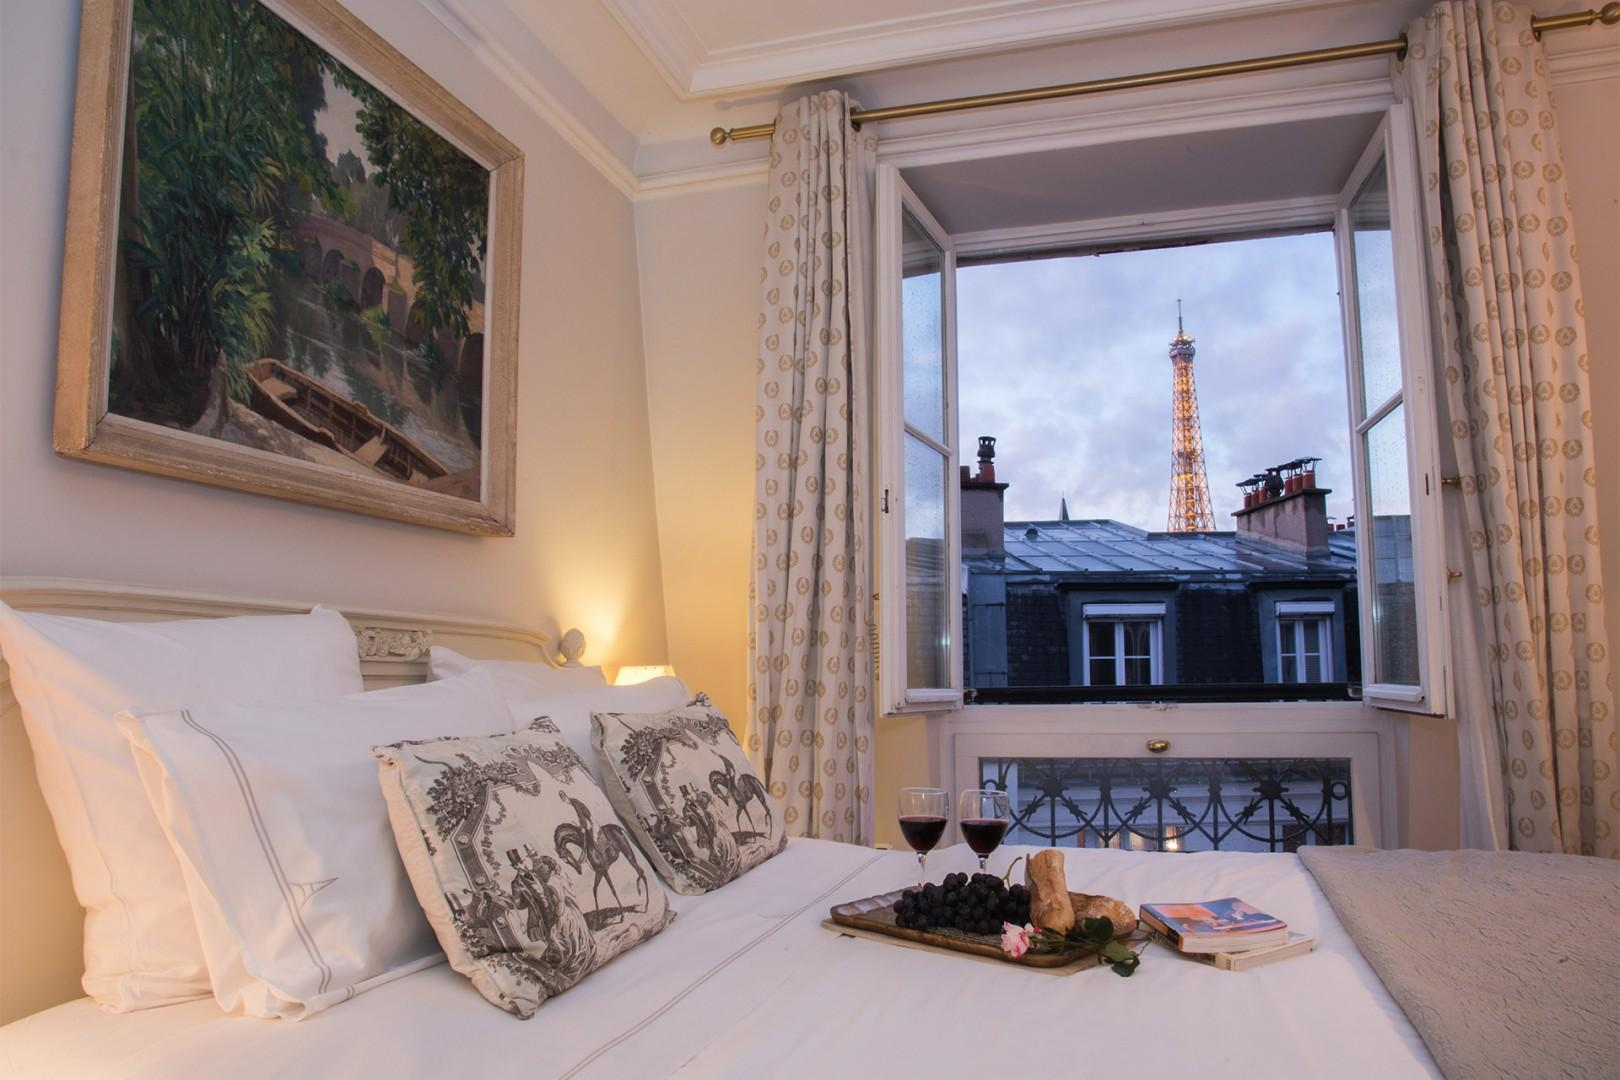 Spoil a loved one with a romantic night in.